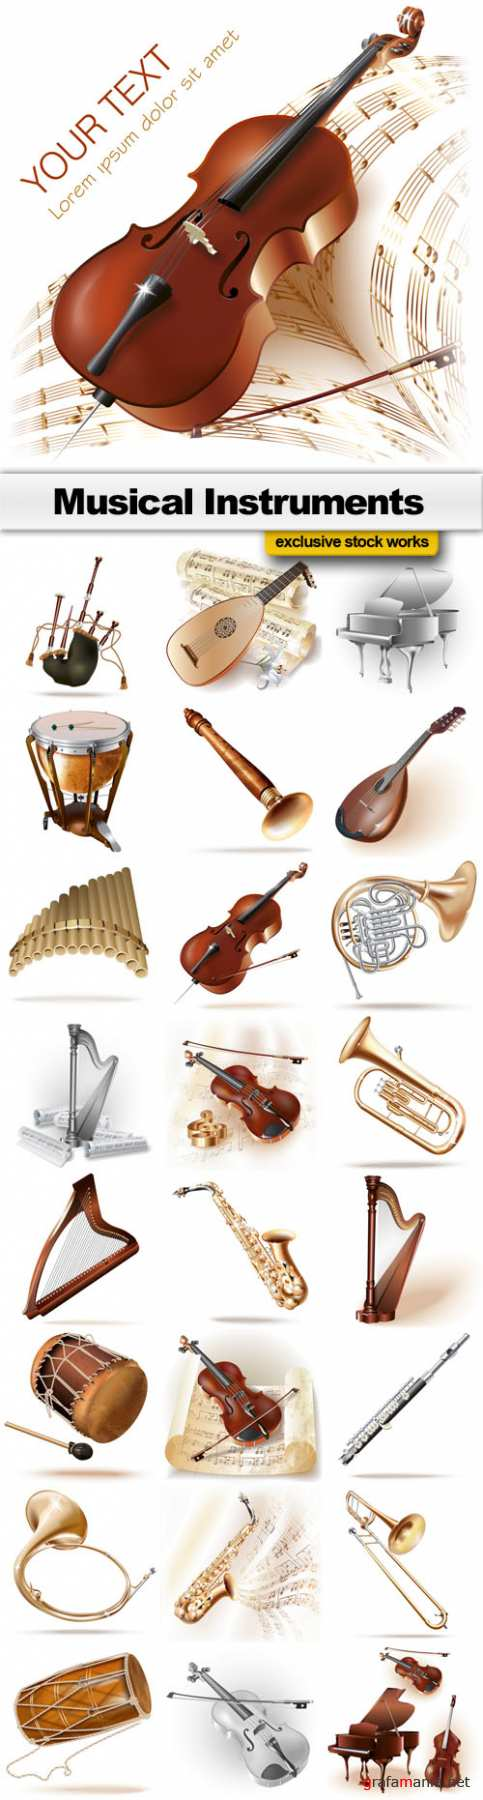 Musical Instruments  - 25 EPS